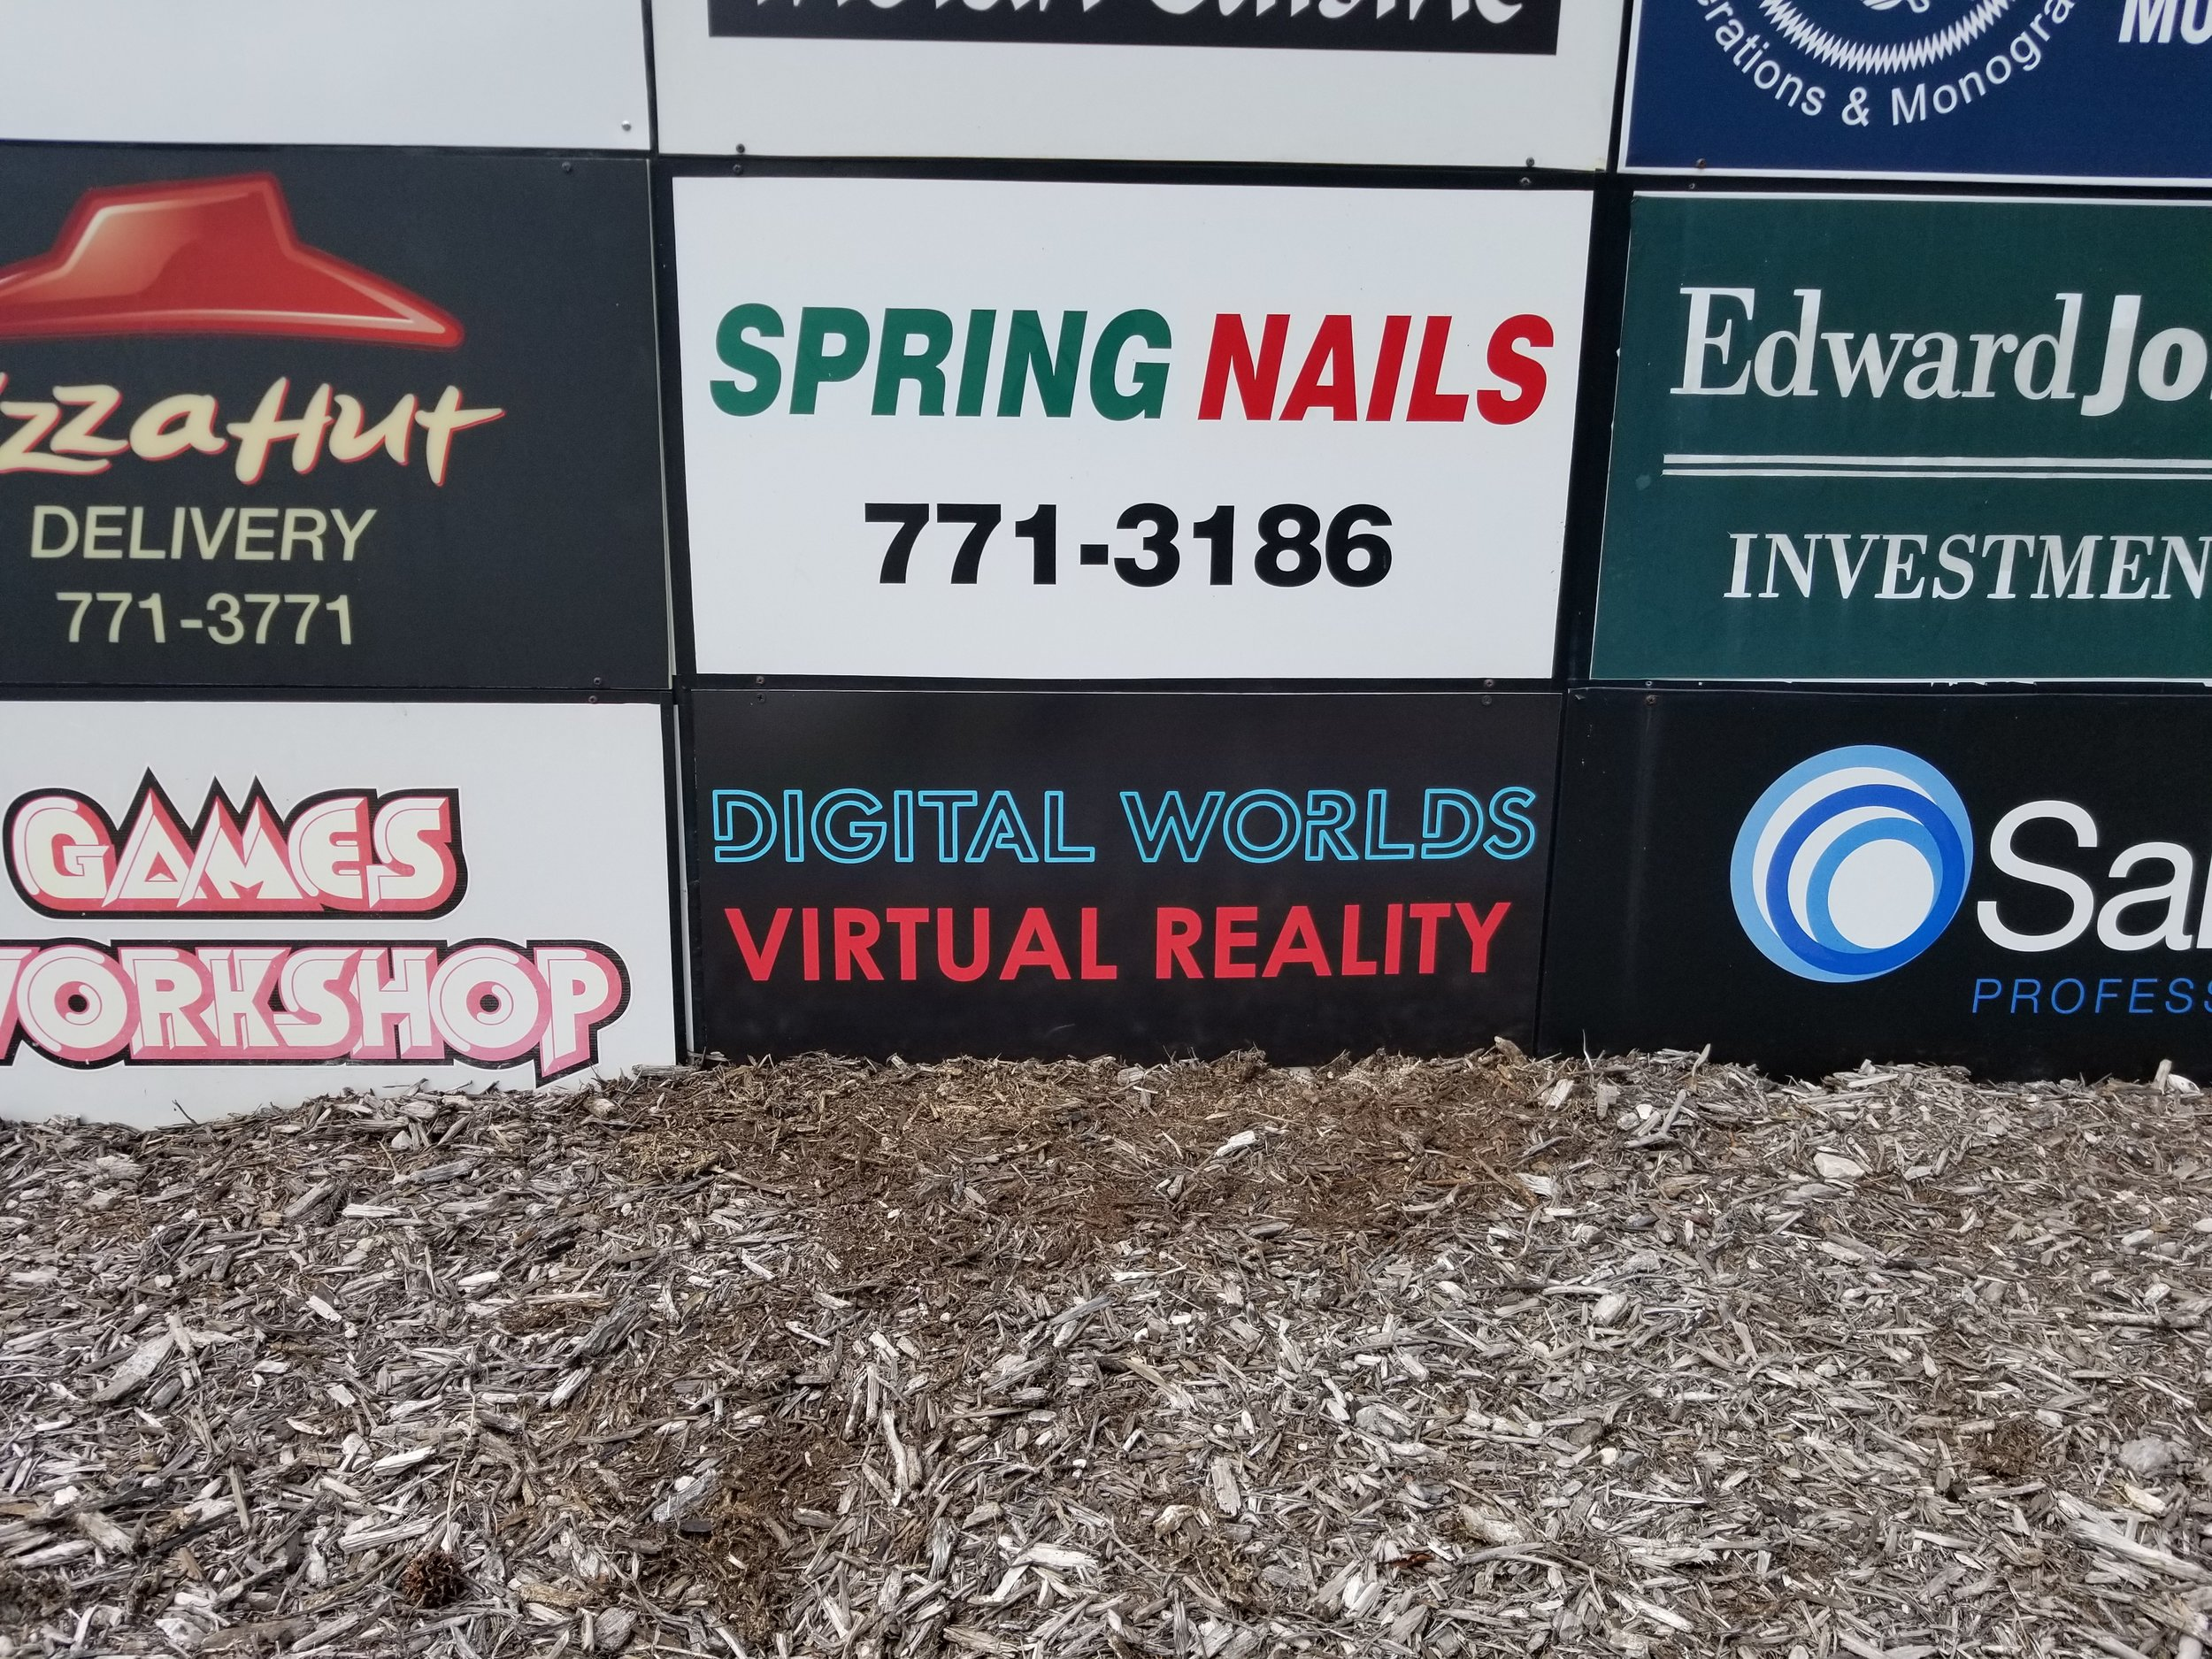 Image of the Digital Worlds VR Arcade Monument Sign With Larger Virtual Reality Franklin Tennessee.